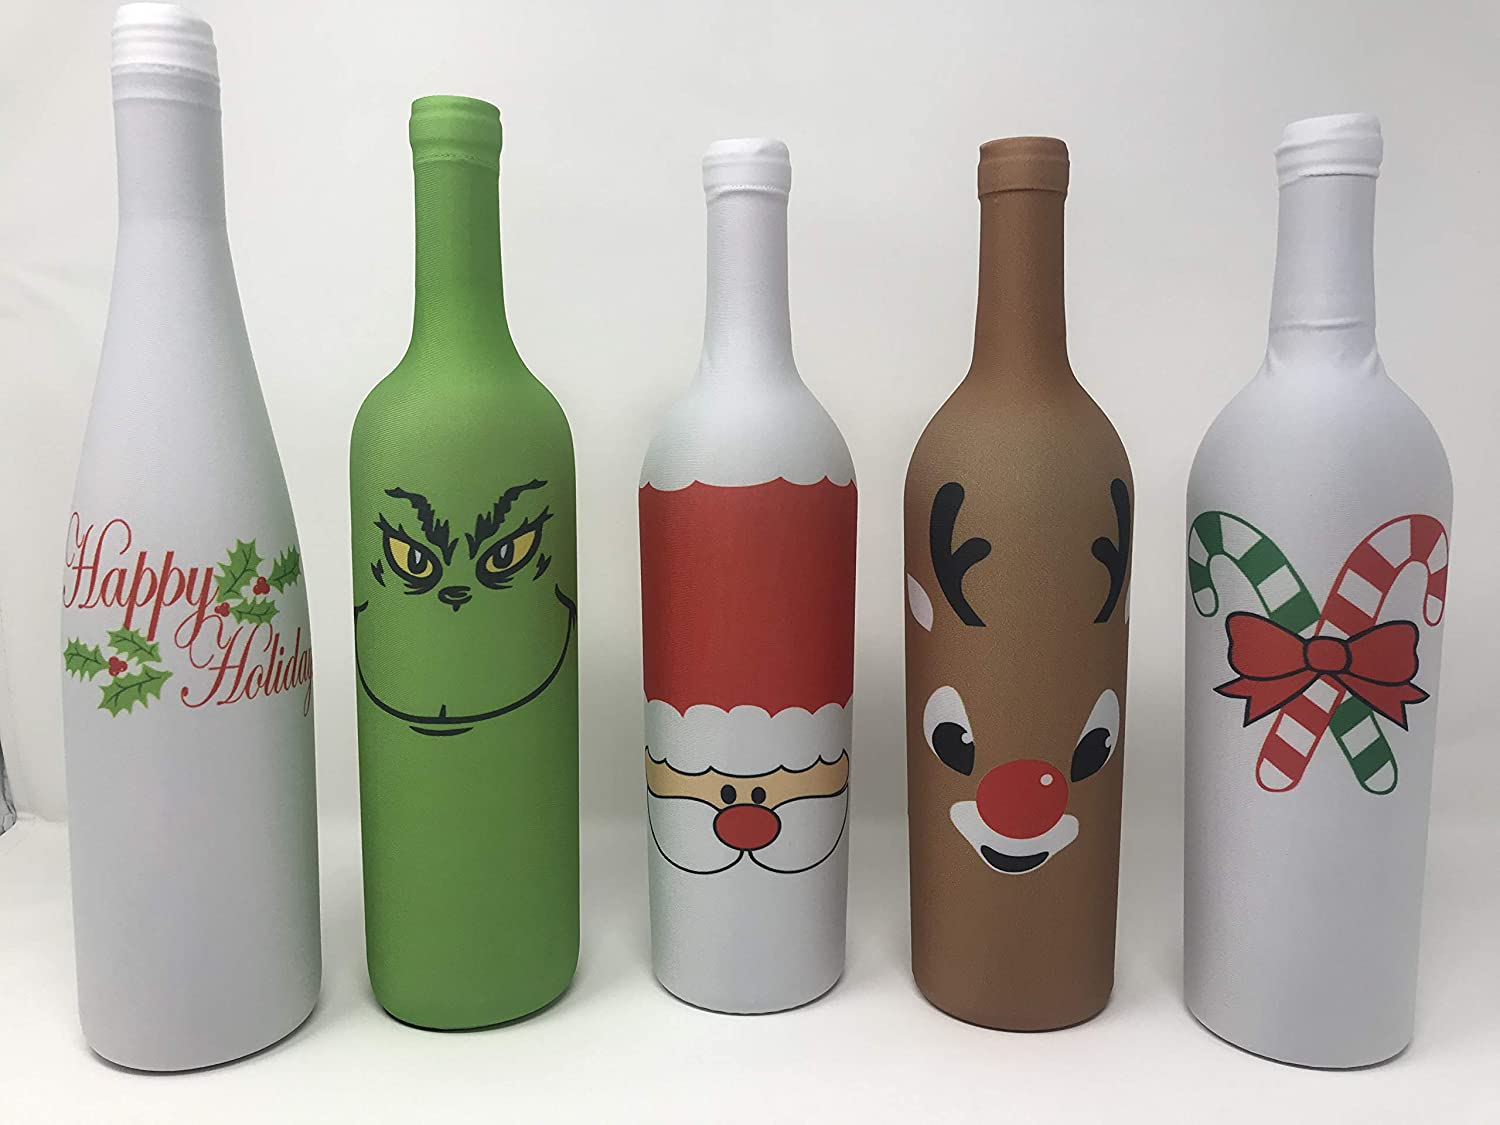 Holiday Gear Christmas Wine Bottle Covers & Xmas Decorations Wine Skin Unique Christmas Wine Decor Set of 5 Better Than Wine Labels & Wine